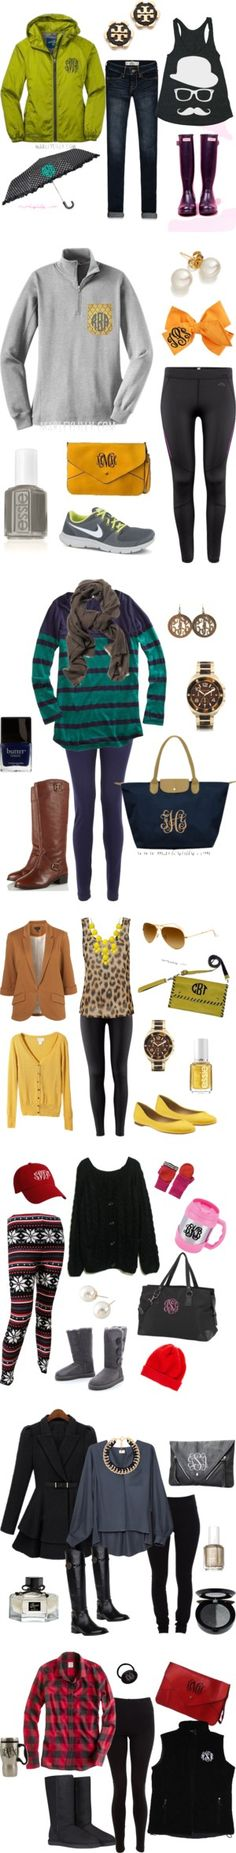 by marleylilly on Polyvore